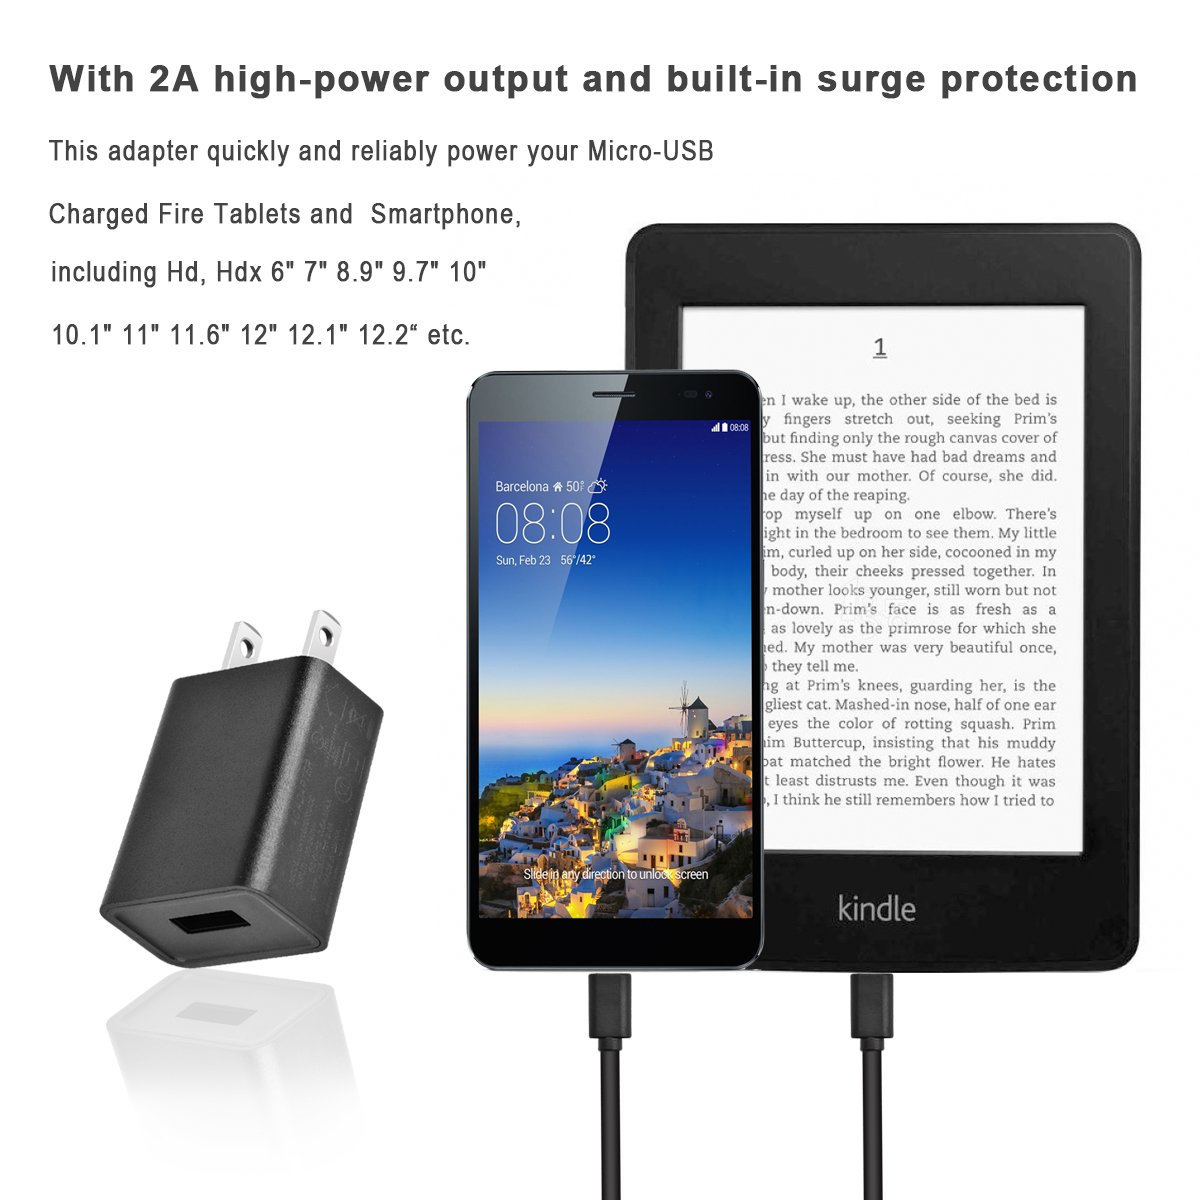 Charger for use with Kindle, 2A Rapid Charger Adapter for Kindle Fire HD,HDX 6'' 7'' 8.9'' 9.7'',Fire 7 8 10 Tablet&Kids Edition, All New Fire, Echo Dot, Paperwhite,Oasis,Voyage with 5FT Power Cord by Sopito (Image #6)